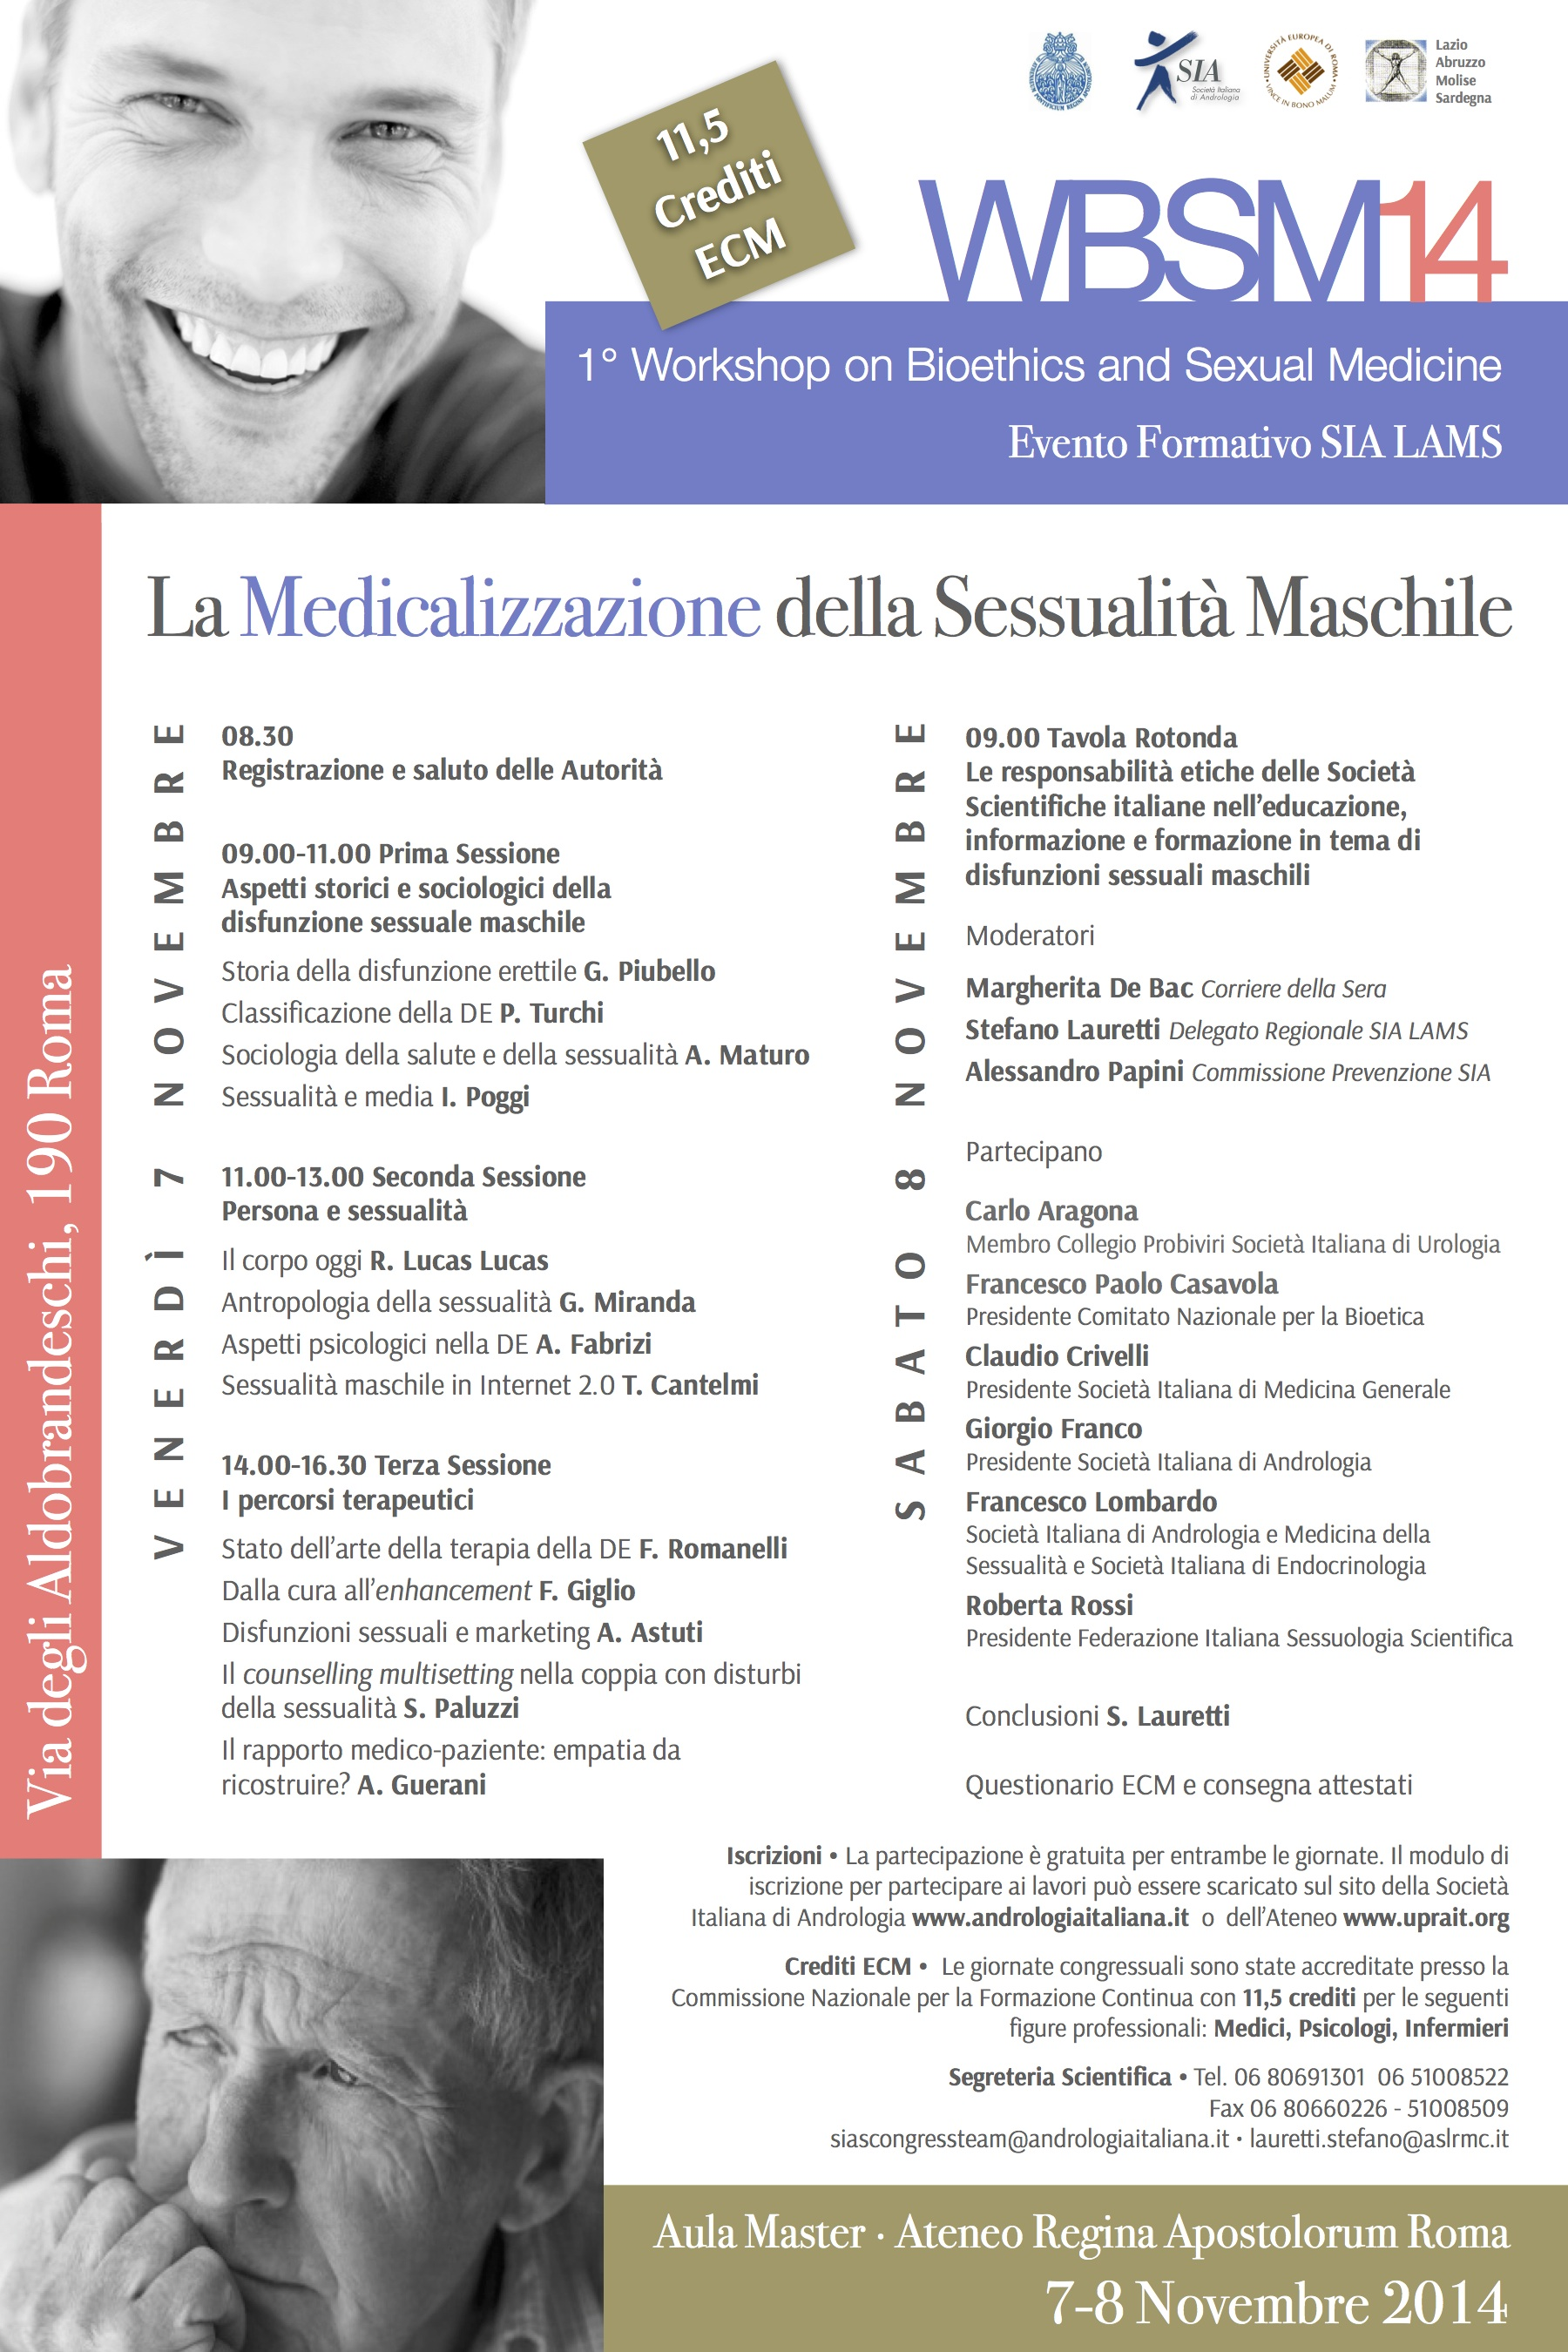 Tonino Cantelmi - 1° Workshop on Bioethics and Sexual Medicine - Convegno 2014